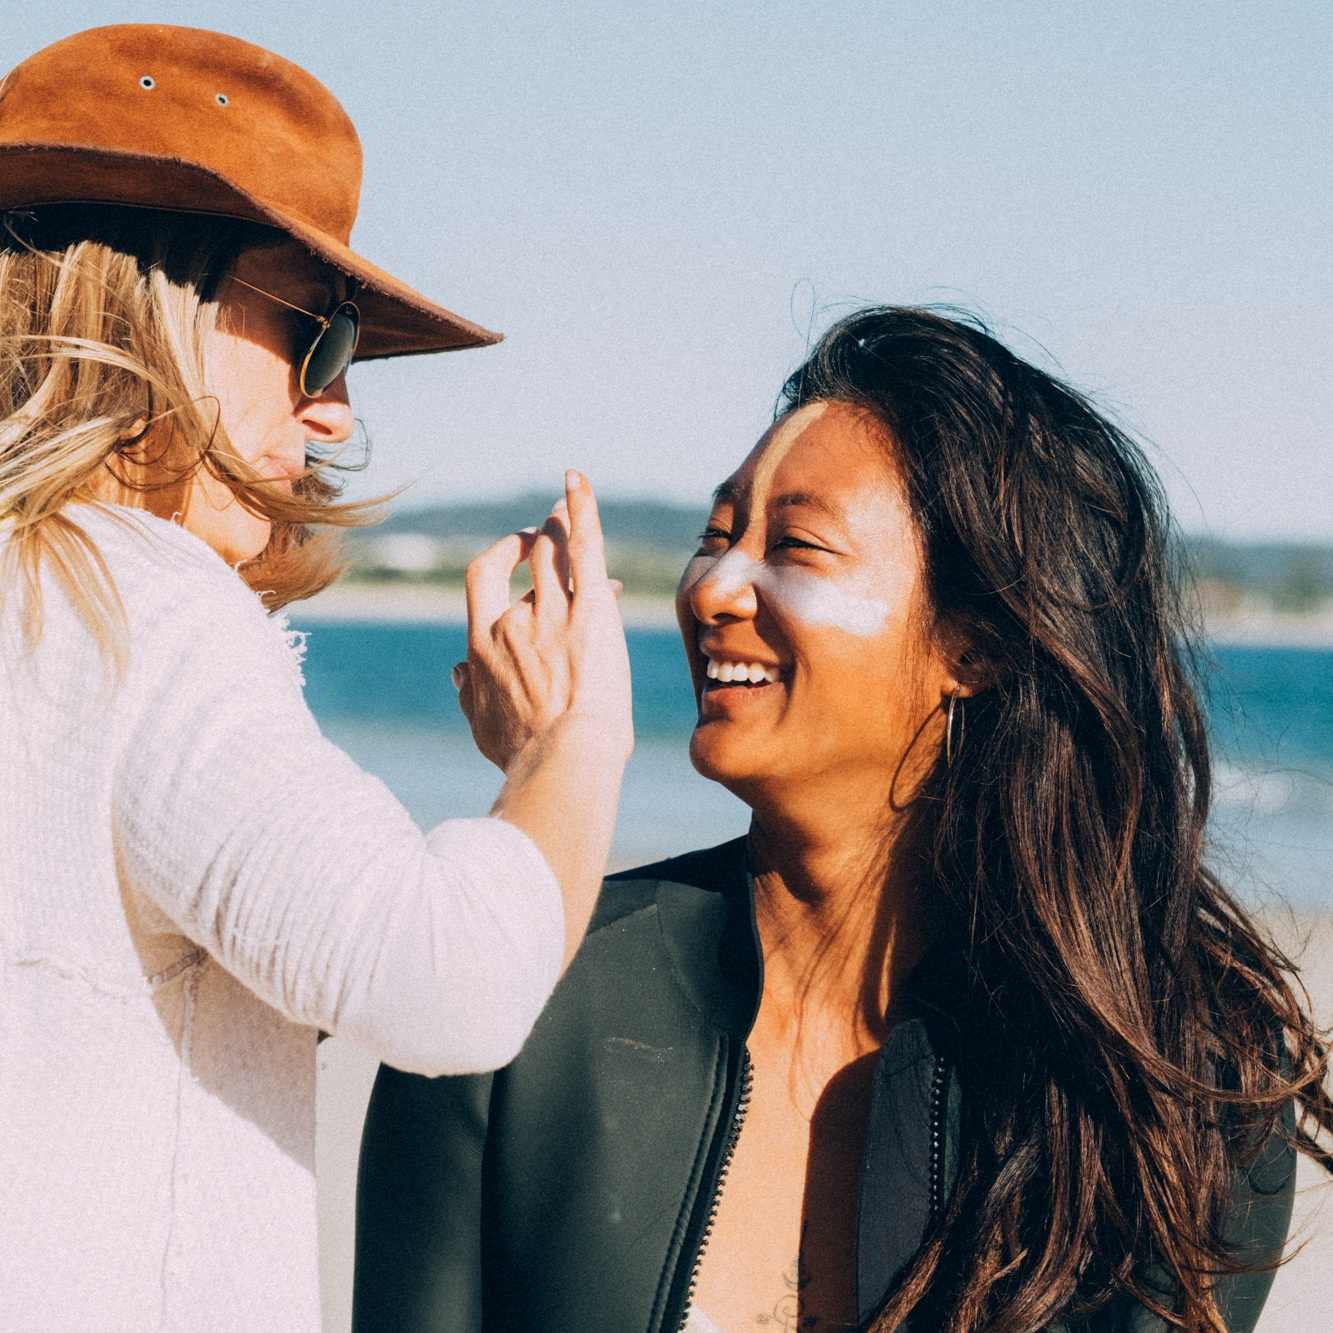 PEOPLE OF THE EARTH - FOR THE BEST OF NUTRITIONAL SKINCARE, MADE WITH LOVE FROM BYRON BAY! SUNSCREEN AND SKINCARE THAT'S ALL ABOUT HEALTH, ETHICS, AND MOTHER EARTH.肌と環境に優しい日焼け止め♪